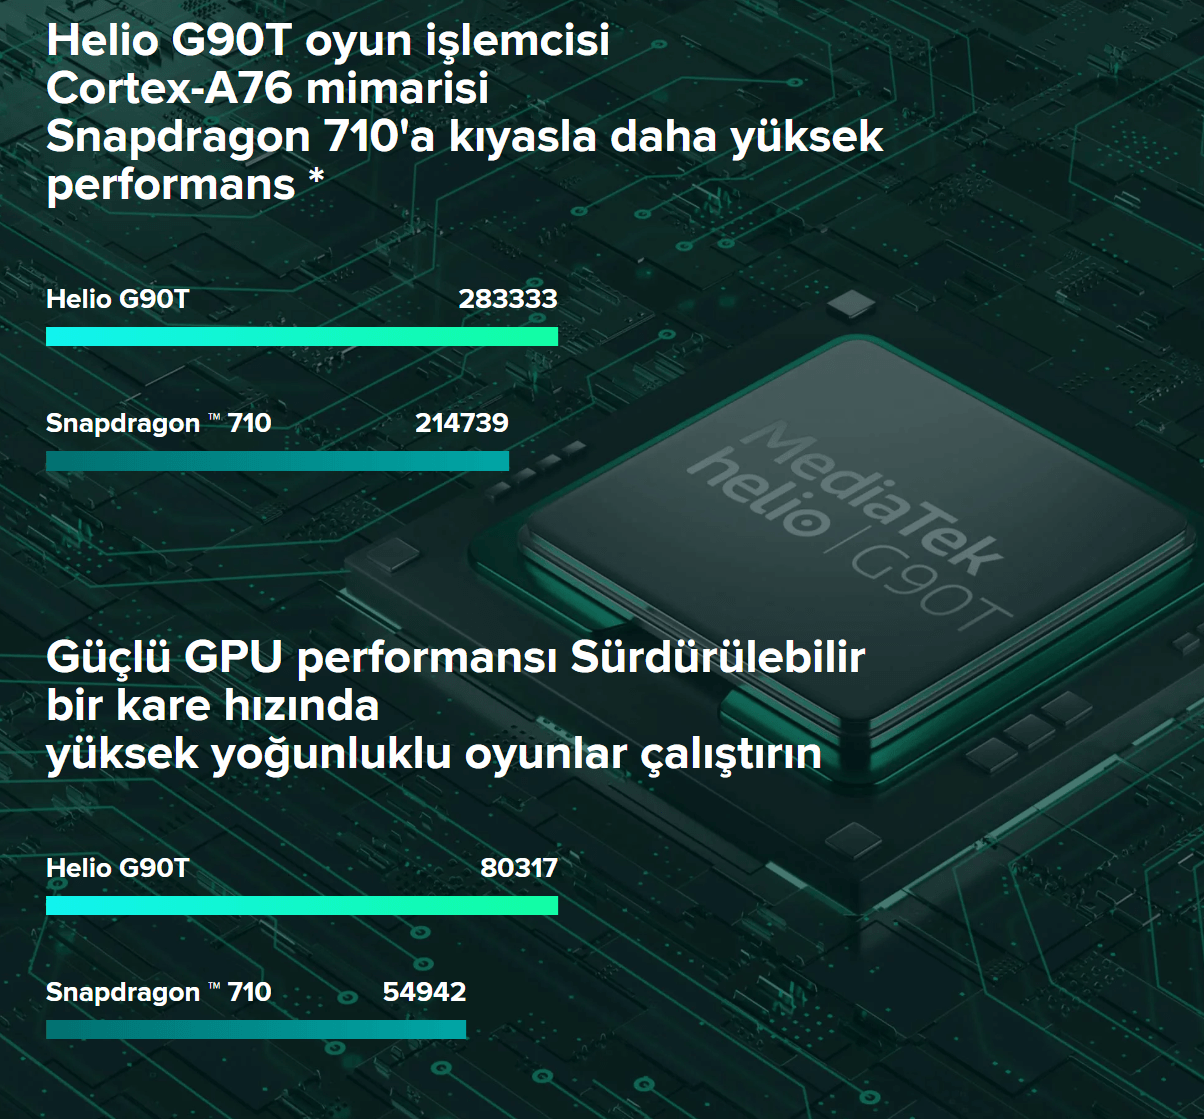 ~/Content/images/Urunler/XIAOMI_Redmi_Note8_Pro_64GB_Cep_Telefonu__Yesil_3.png